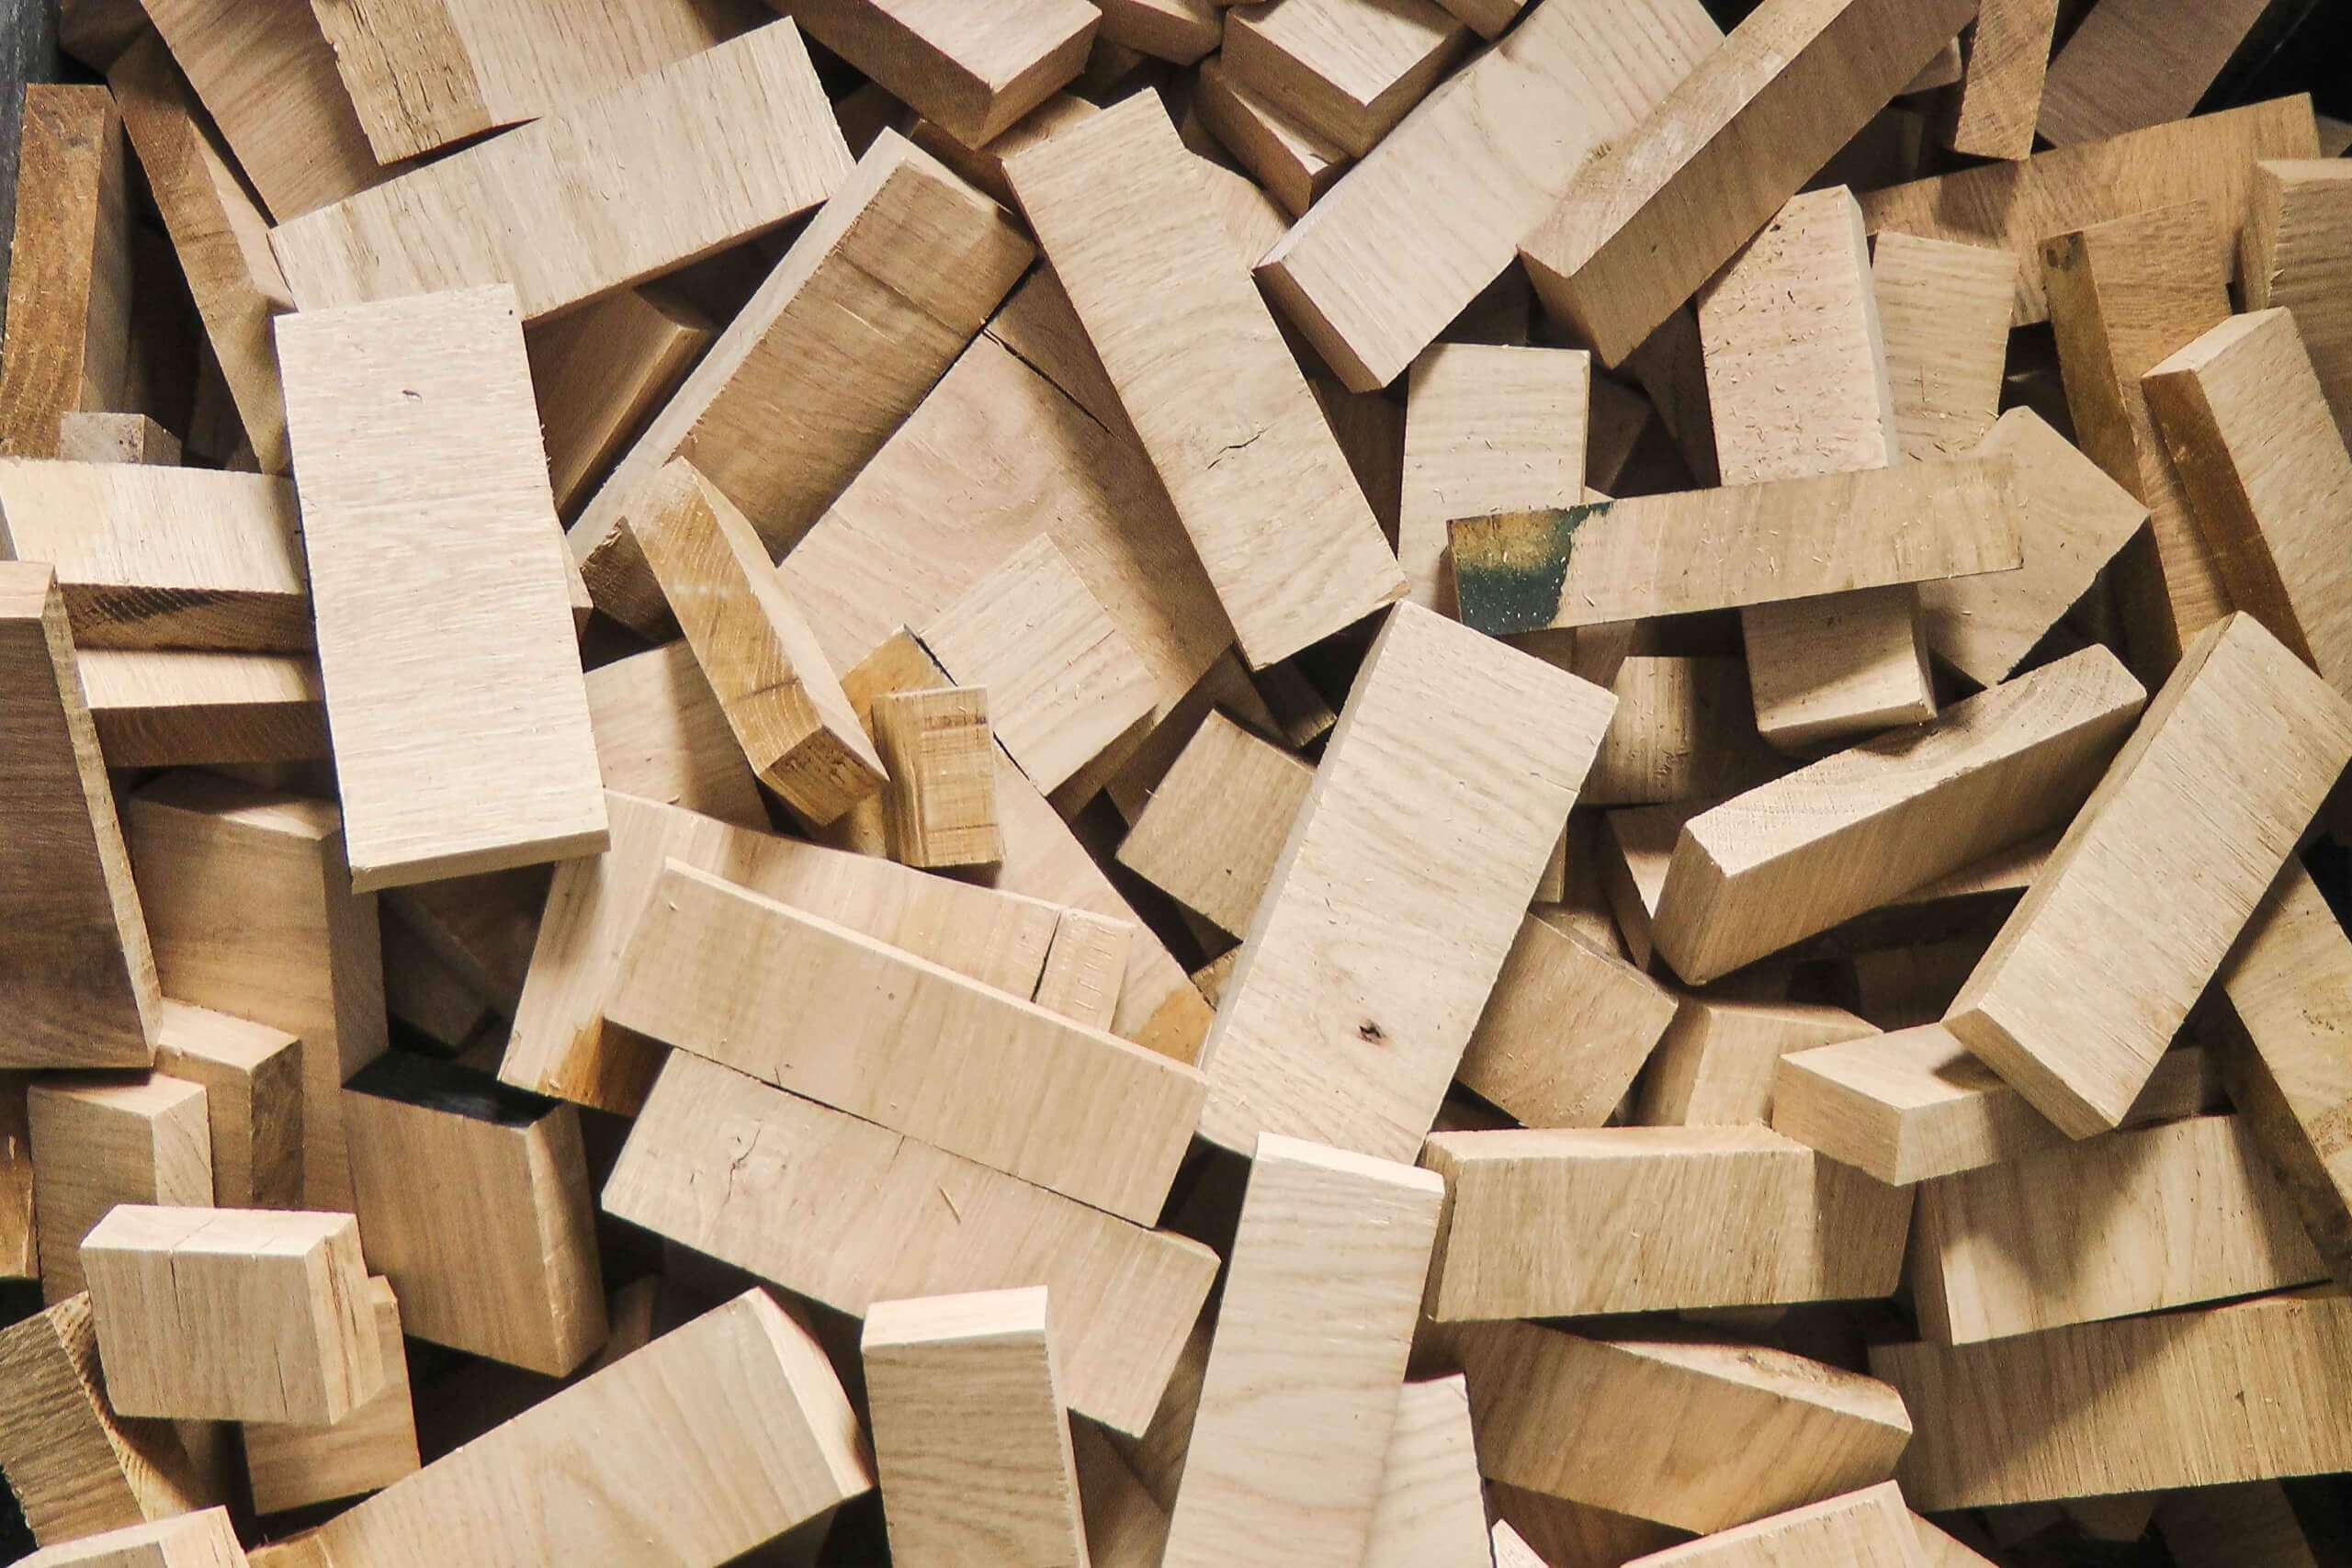 Wood scrap such as squared timber and hardwood cuttings